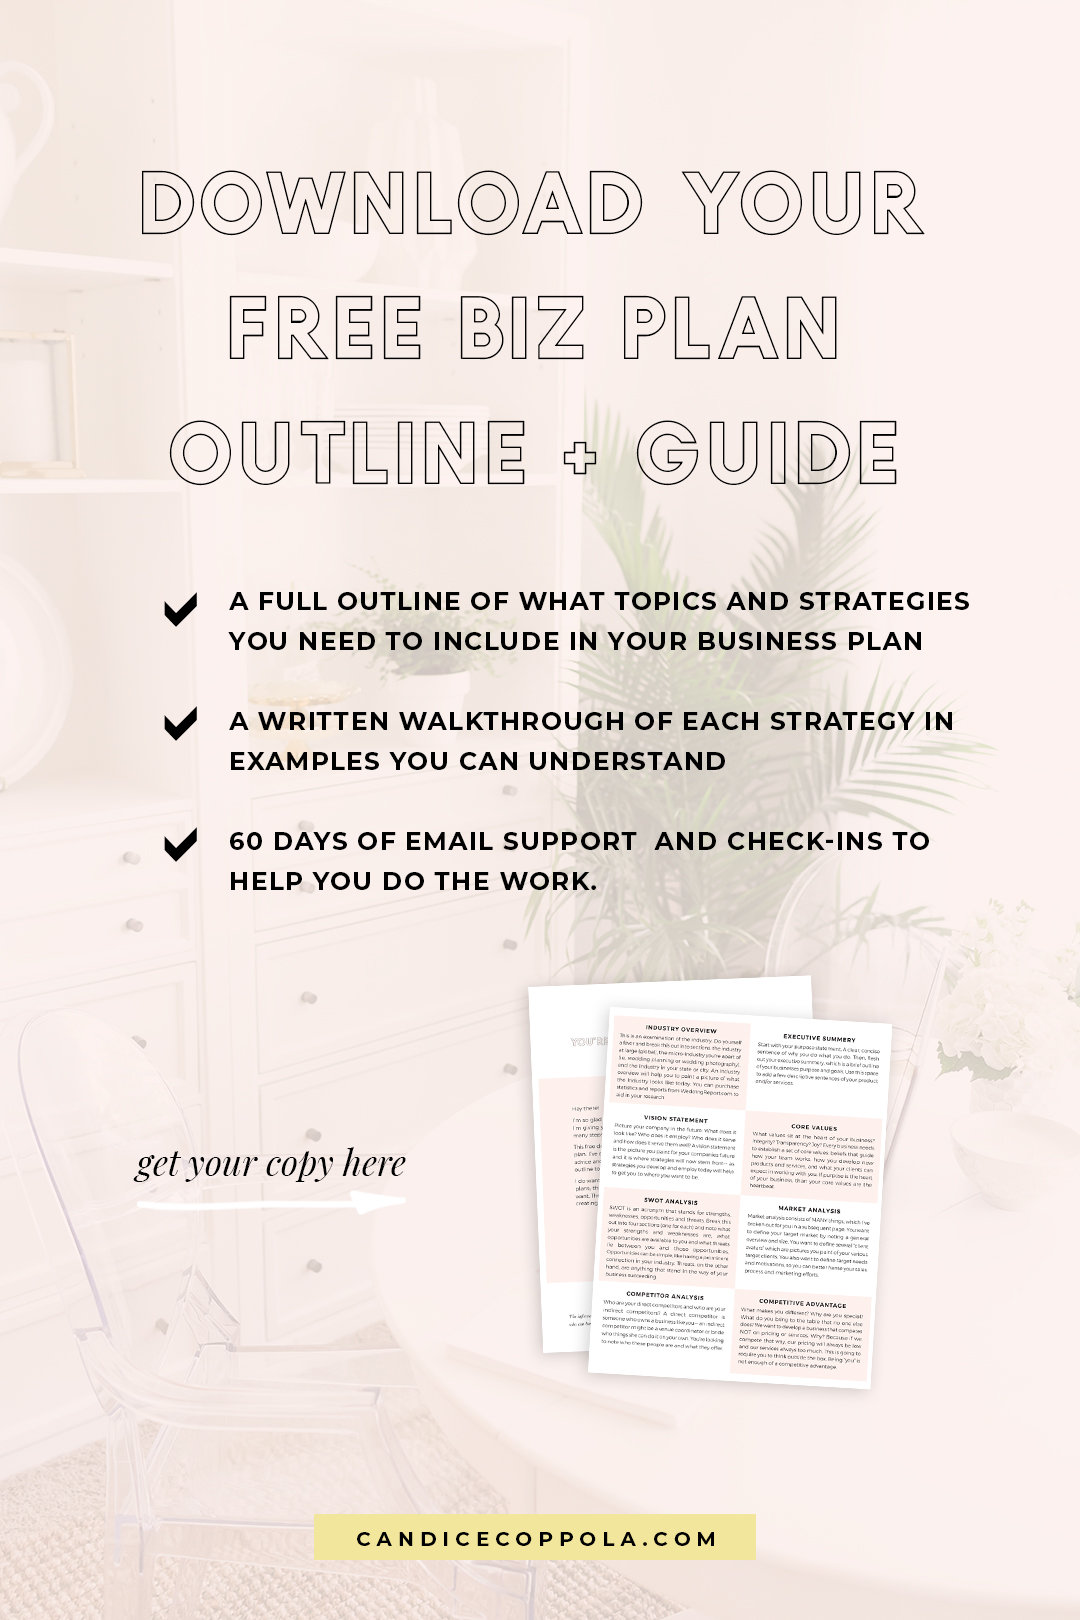 Are you a business owner in the wedding industry? This free business plan template will help kick-start strategies in your business. This template has been specially created for wedding pros like you! So if you're a wedding planner, wedding photographer, wedding cake designer, wedding invitation designer, wedding caterer, or any style of wedding business owner, be sure to download this free business plan template to start creating solid strategies that work in your business. #candicecoppola #businessplan #bizplan #weddingpros